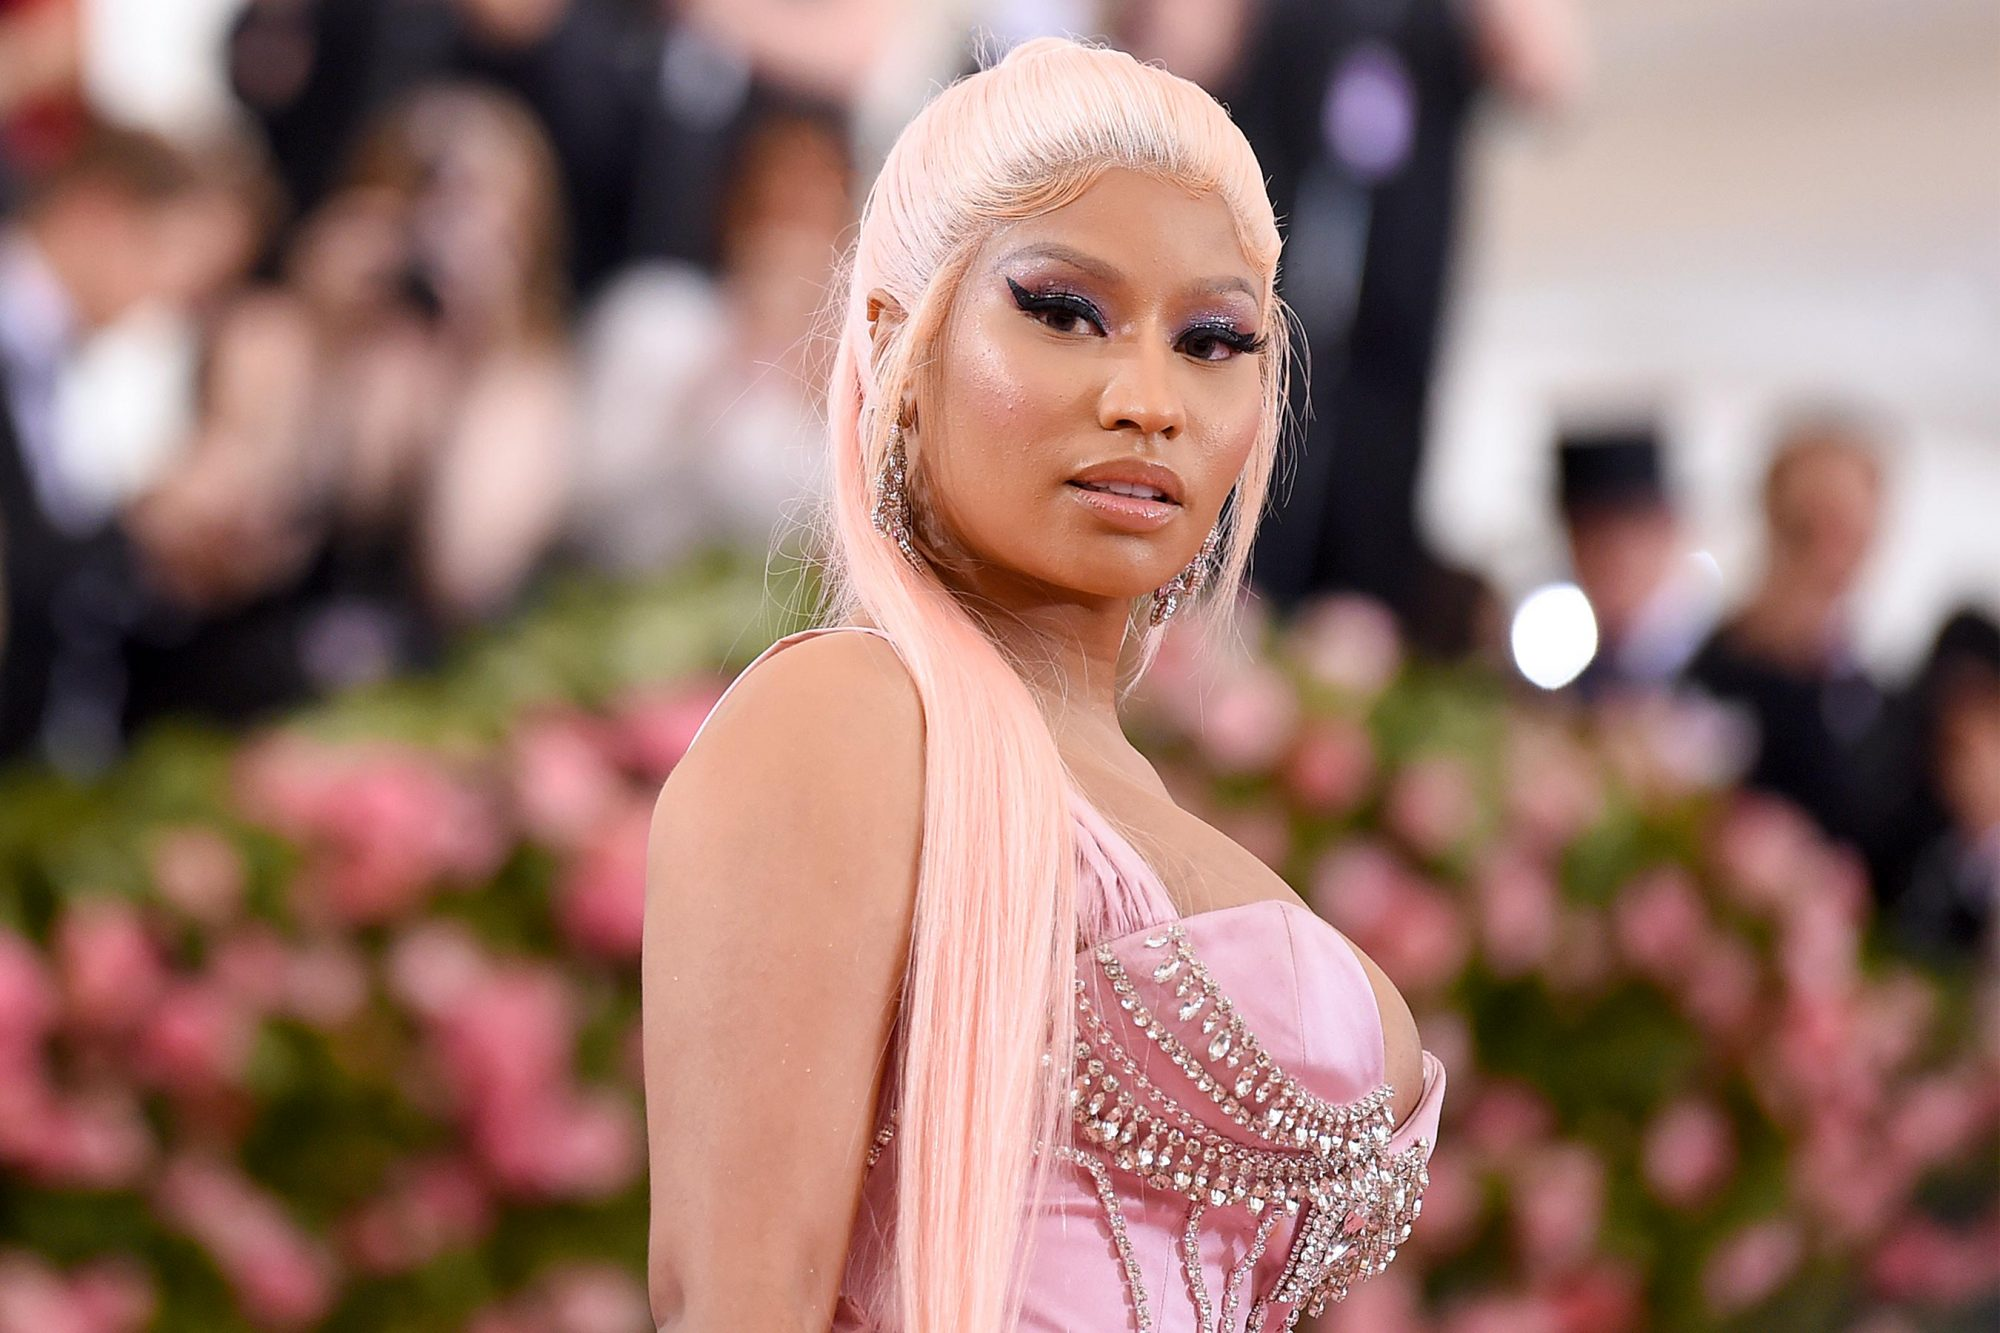 NEW YORK, NEW YORK - MAY 06: Nicki Minaj attends The 2019 Met Gala Celebrating Camp: Notes on Fashion at Metropolitan Museum of Art on May 06, 2019 in New York City. (Photo by Jamie McCarthy/Getty Images)